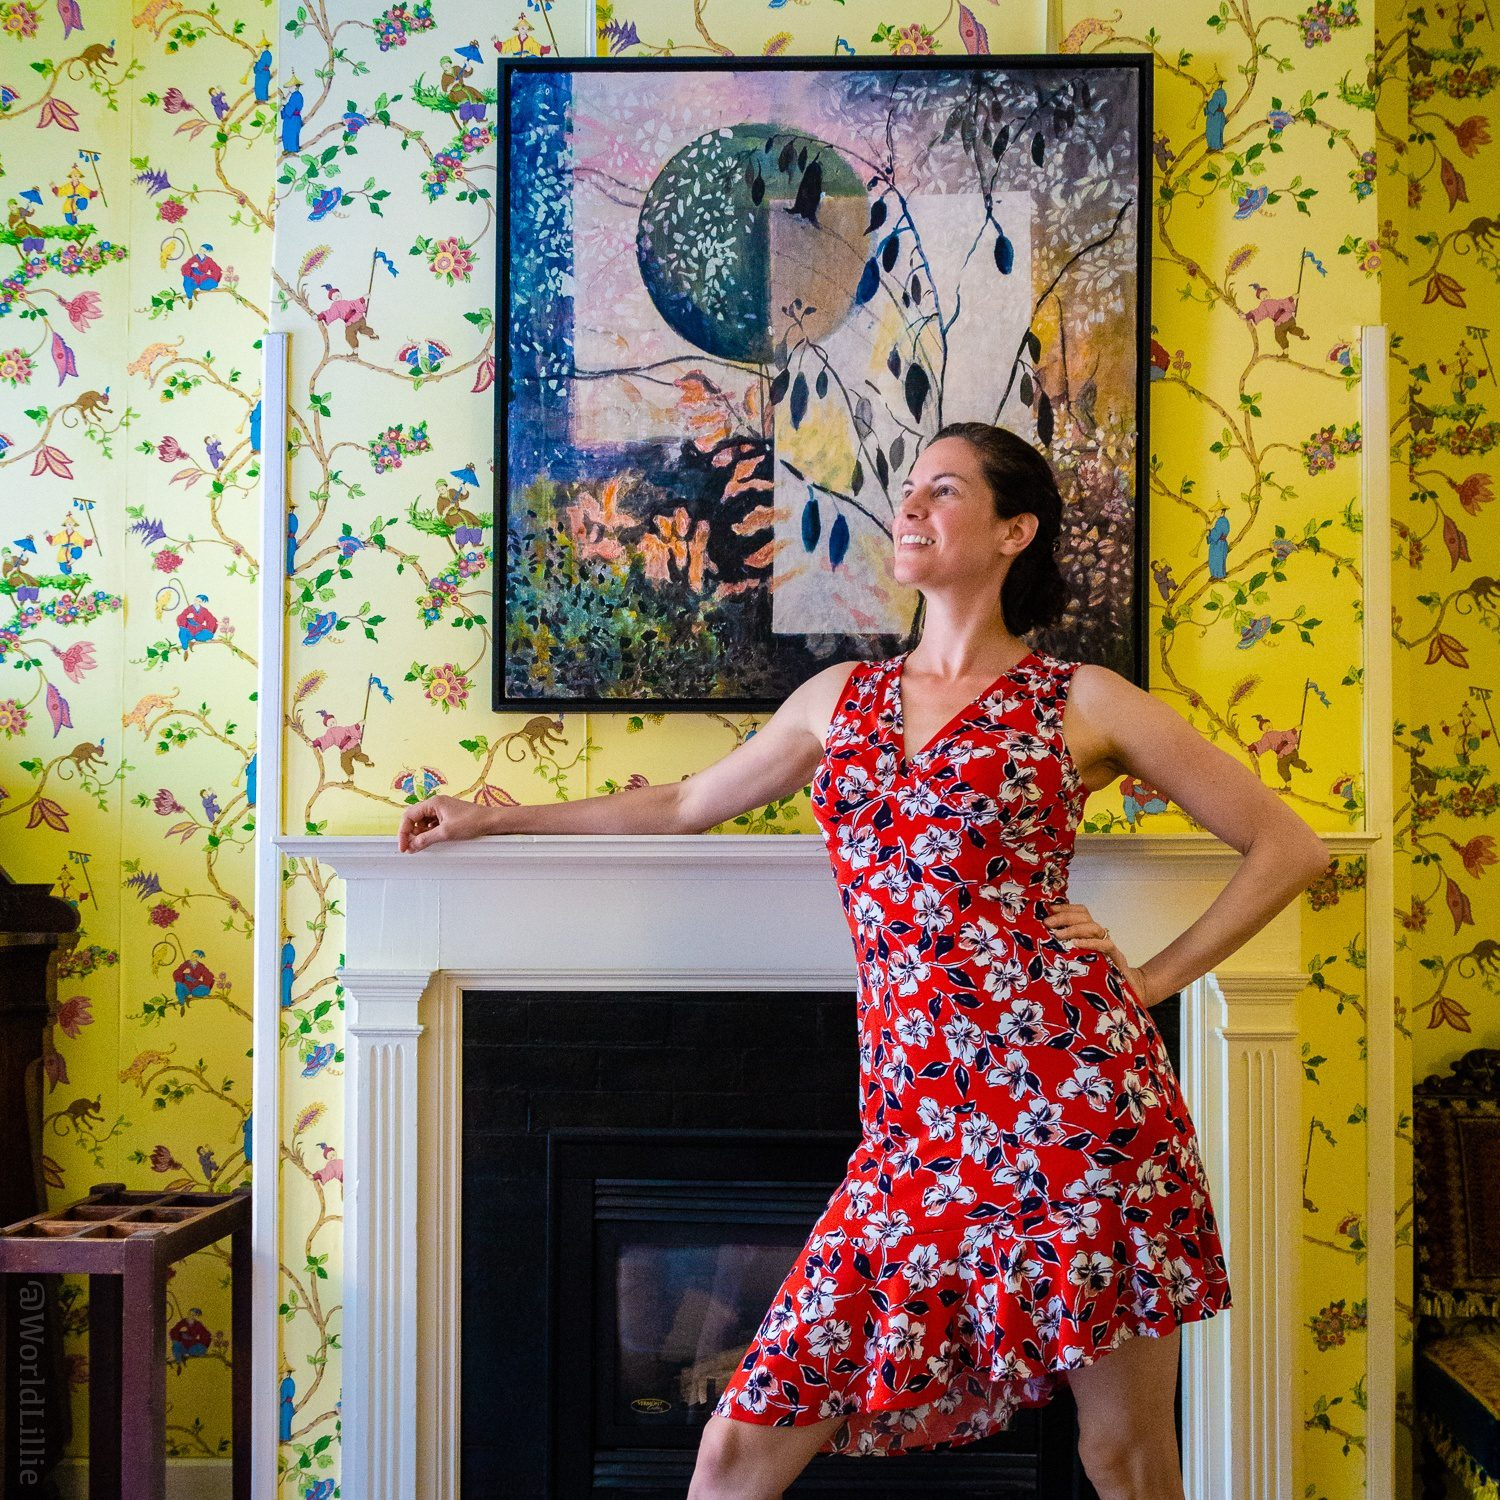 Red Lion Inn Stockbridge yellow patterned wallpaper in the Stagecoach room, contrasted with a patterned travel dress.